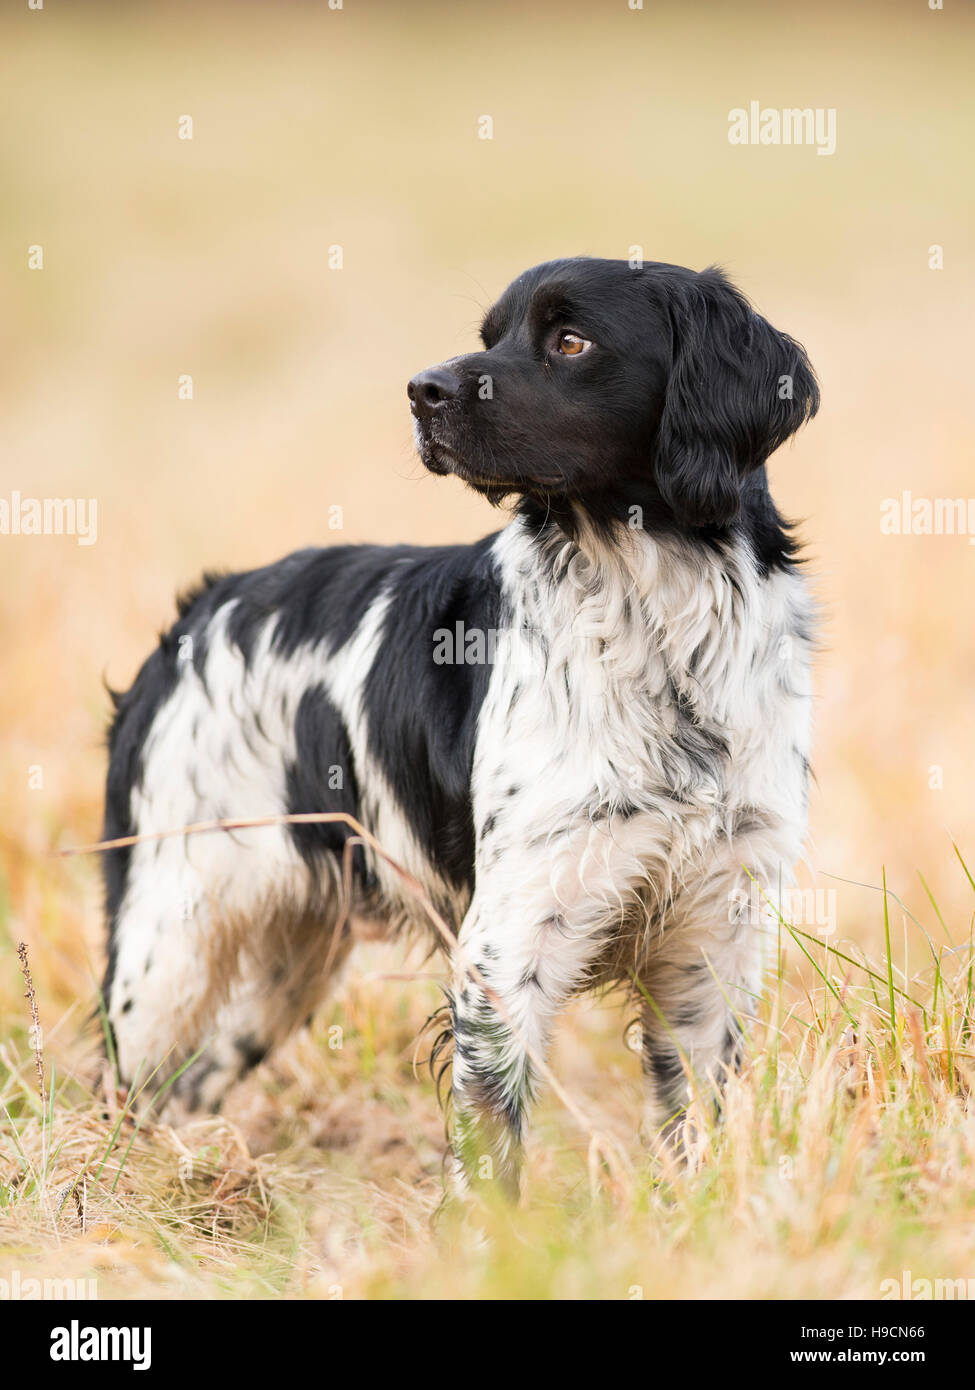 A French Brittany Spaniel Hunting Dog Stock Photo Alamy